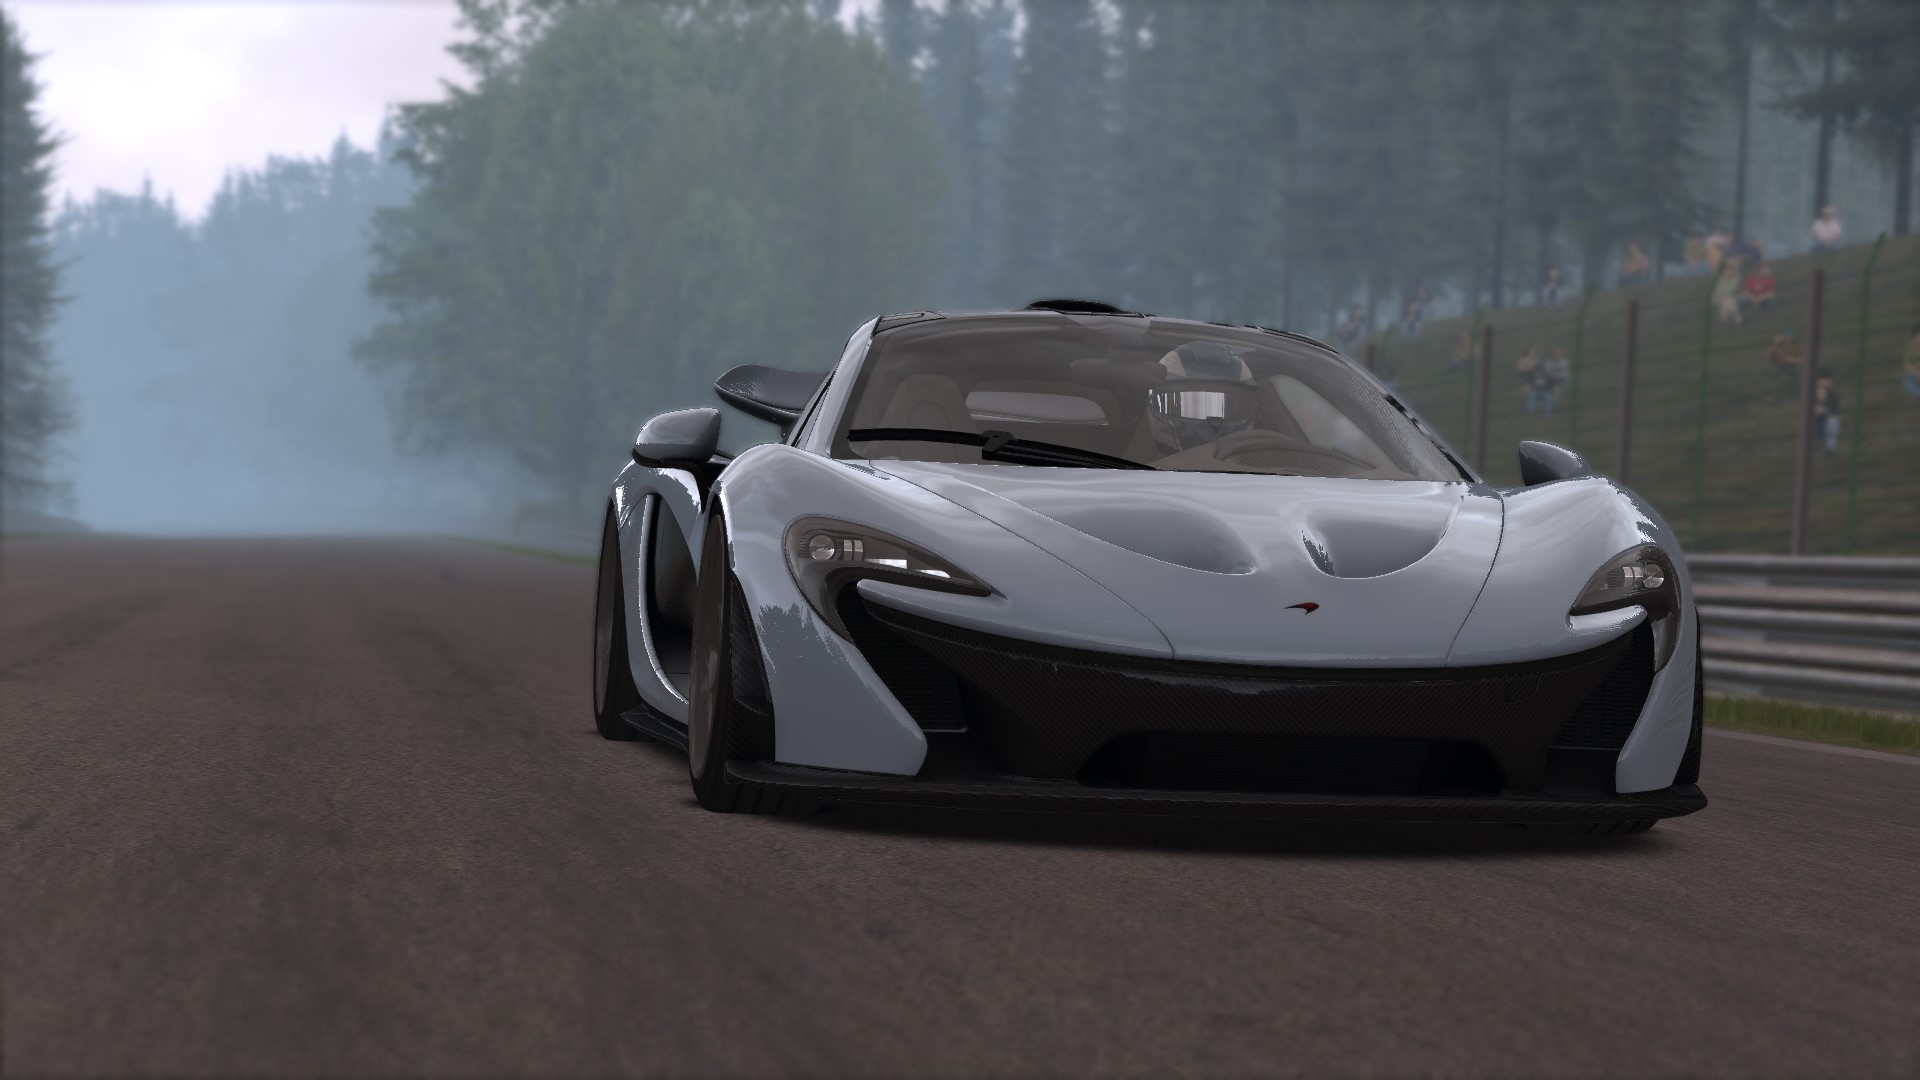 Screenshot_ks_mclaren_p1_spa_11-8-115-19-57-56.jpg